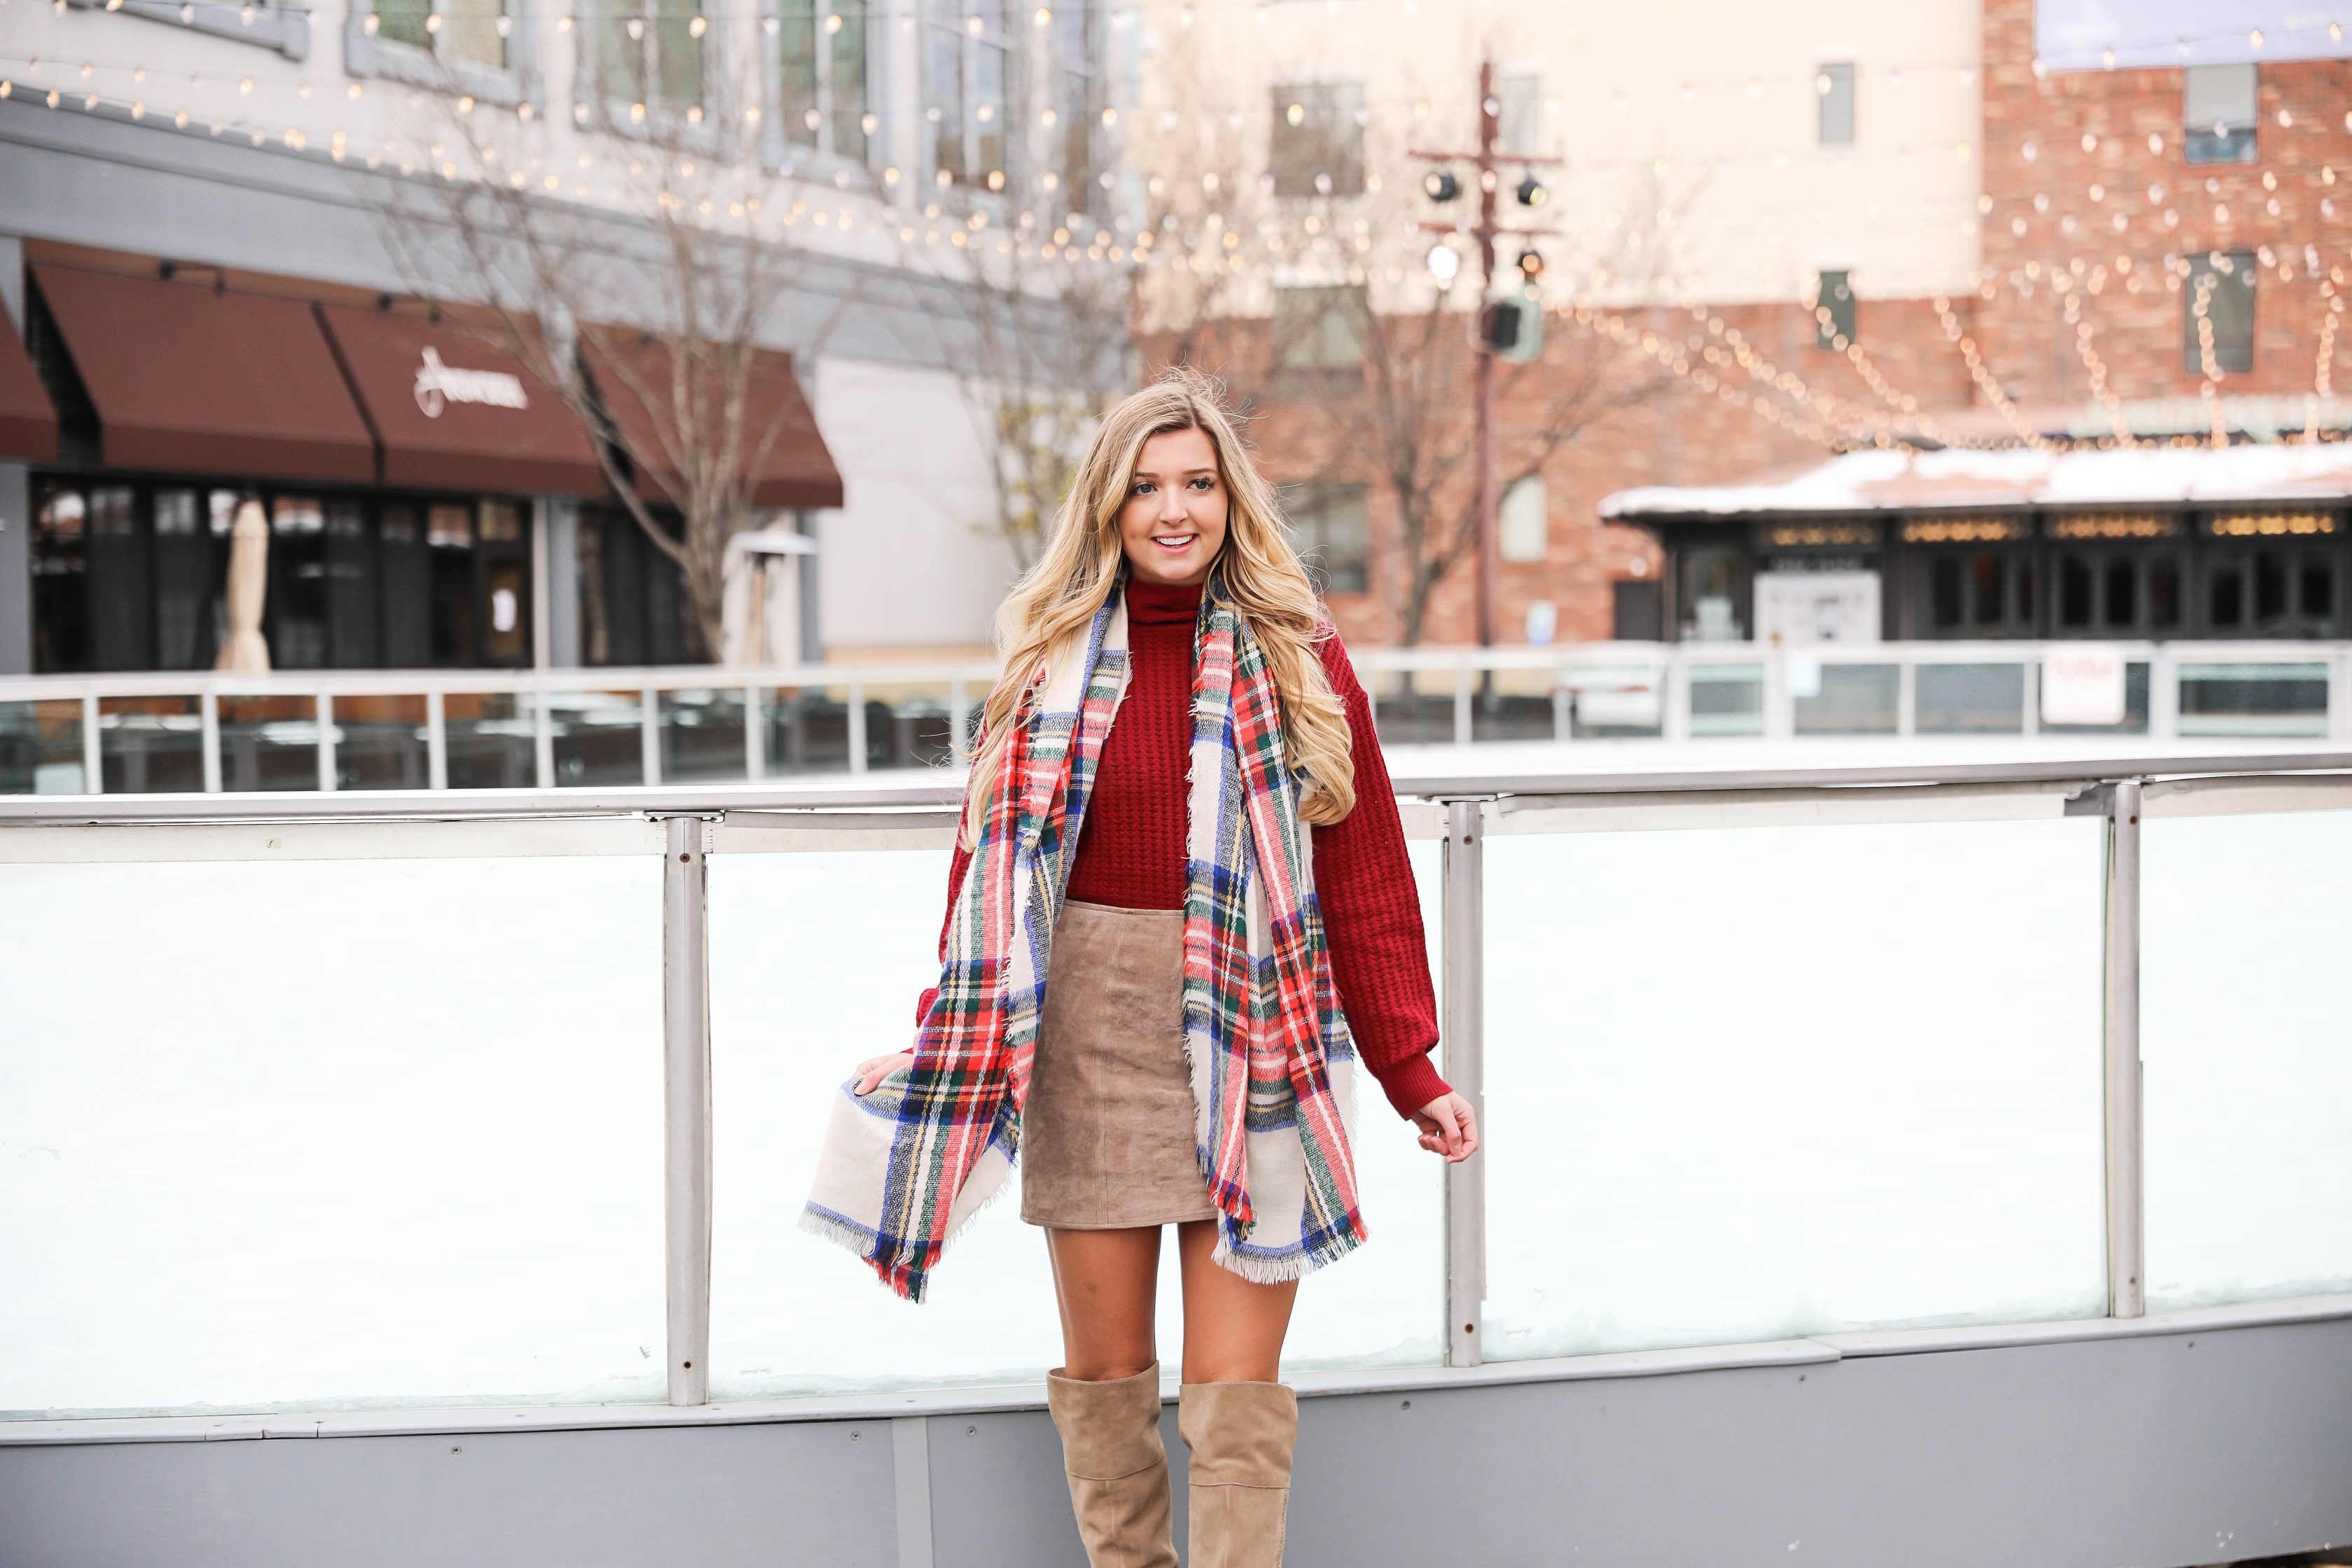 Red turtleneck sweater paired with my favorite suede skirt and Vince Camuto over the knee boots! This holiday look looks so cute with this red and green plaid scarf! The cutest winter outfit on the fashion blog daily dose of charm by lauren lindmark